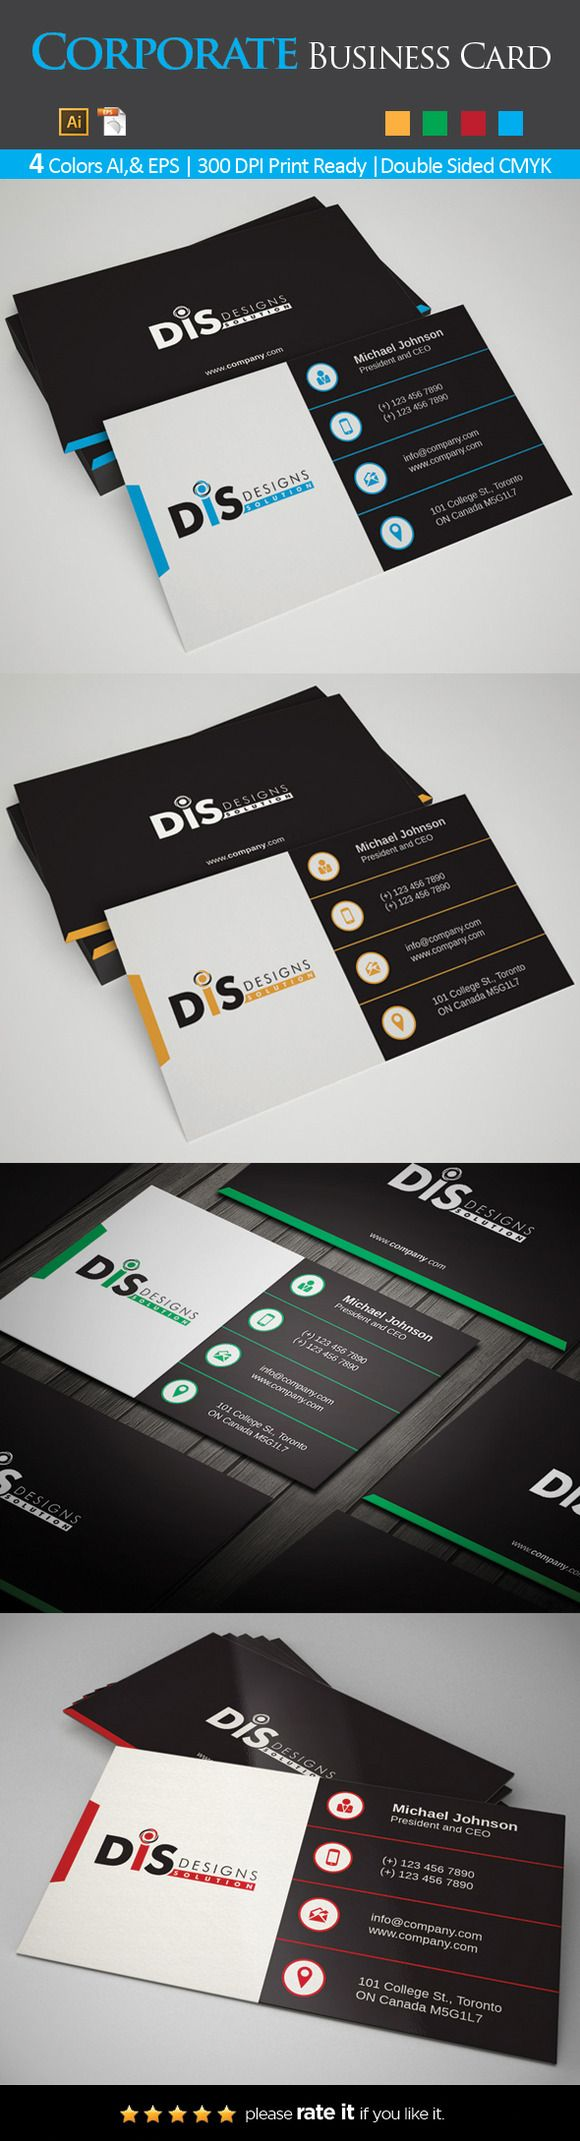 305 best Business Card Templates images on Pinterest | Business card ...